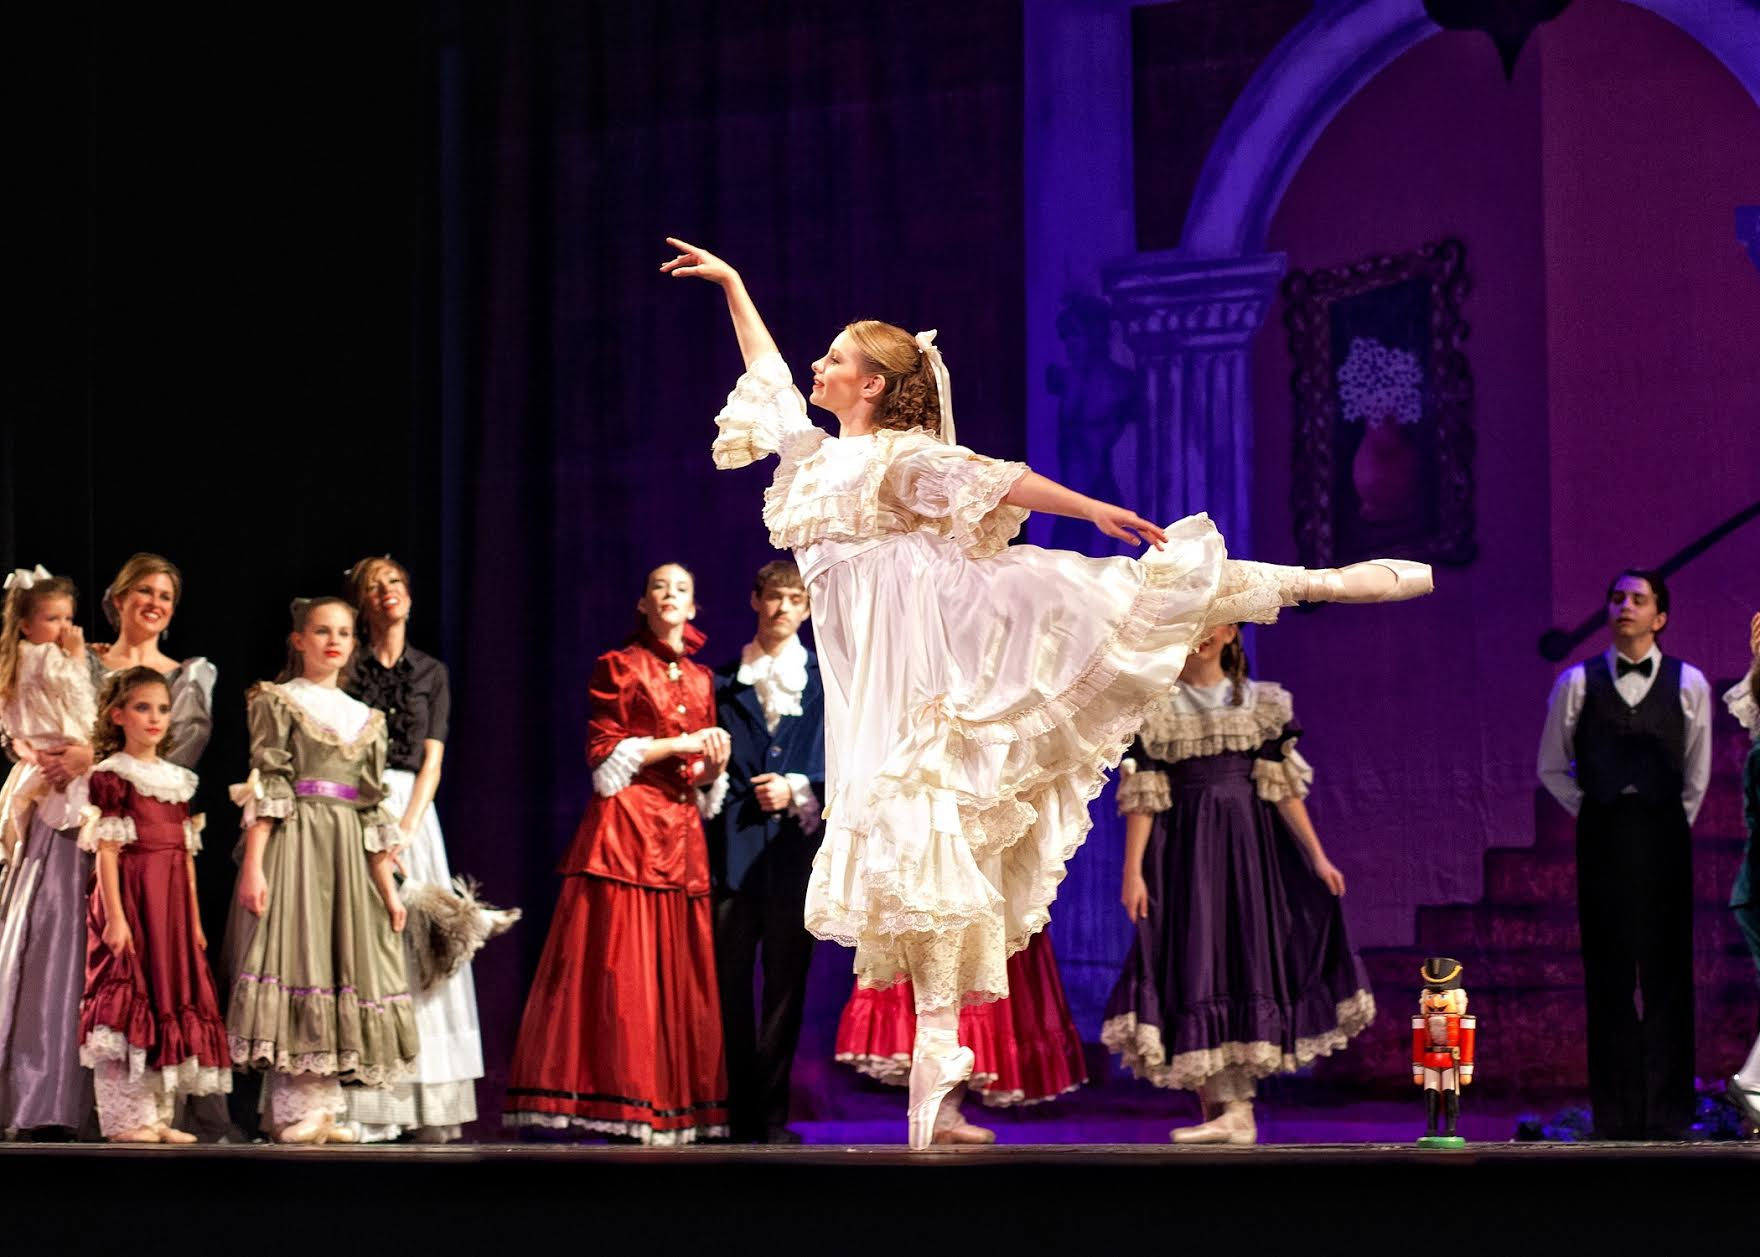 Andalusia Ballet's The Nutcracker